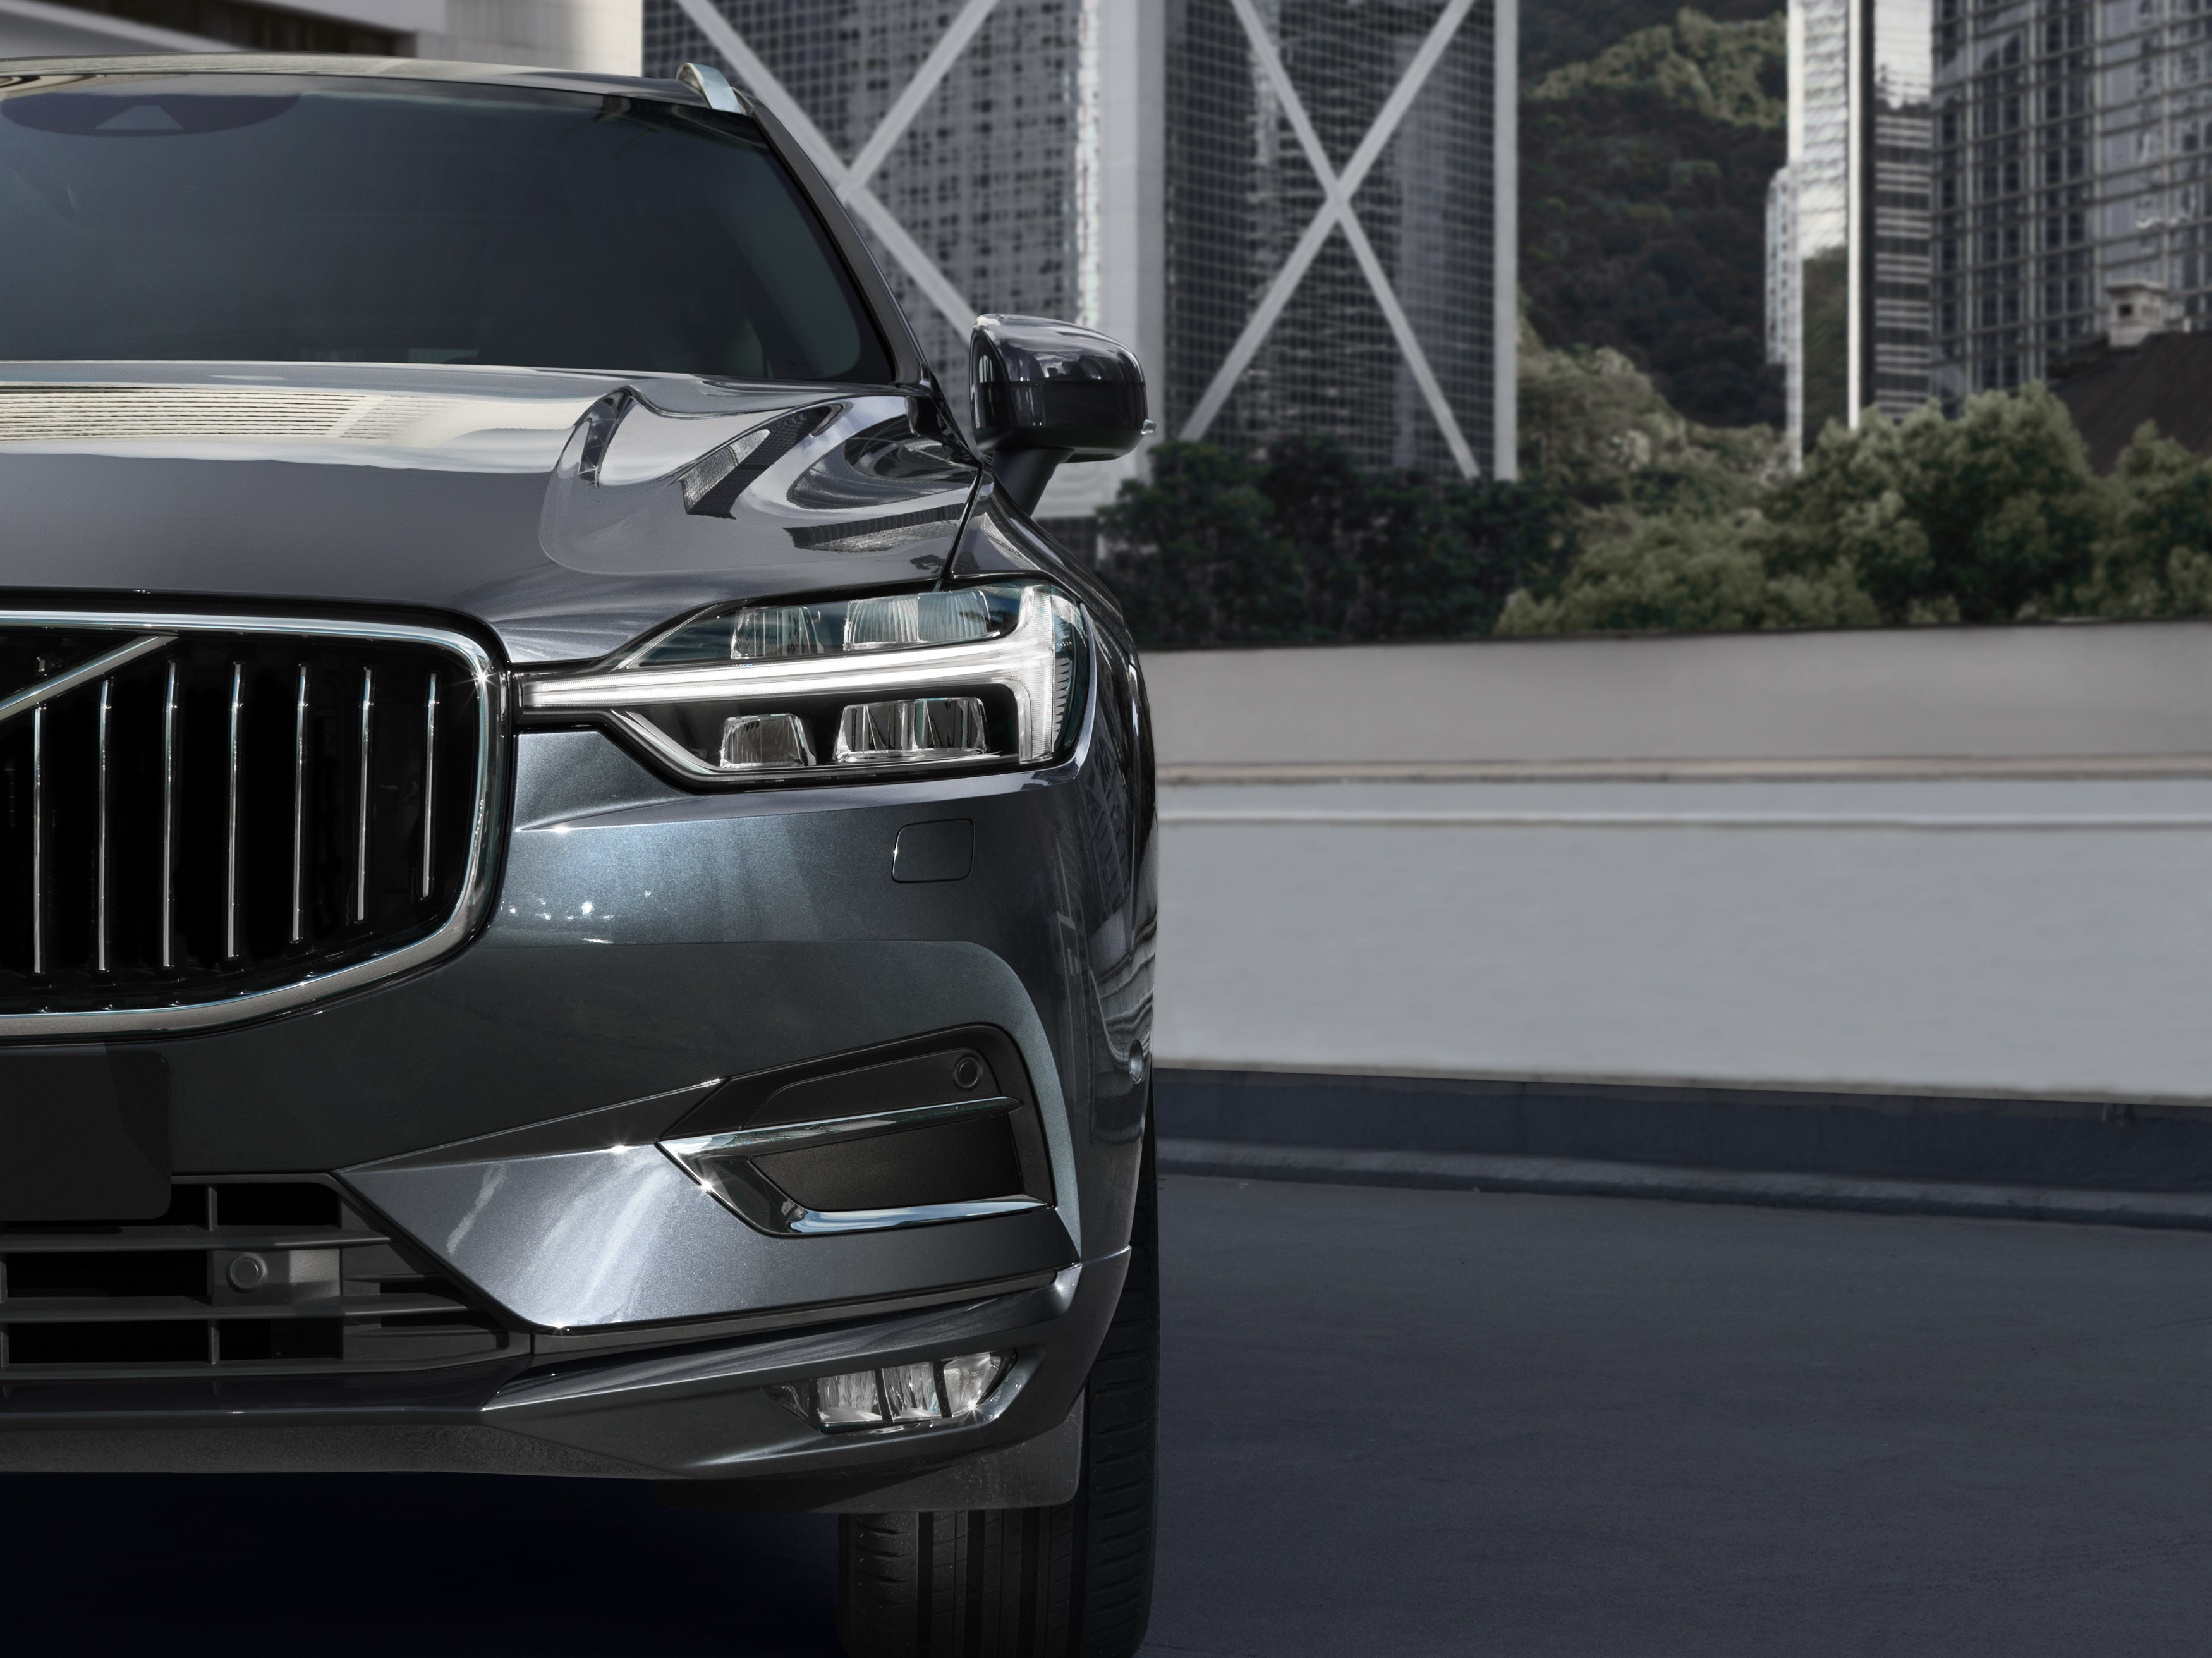 migs-foto-cgi-photography-automotive-car-hong-kong-Volvo-2018-XC60_0181_Alex_3_to_Michael